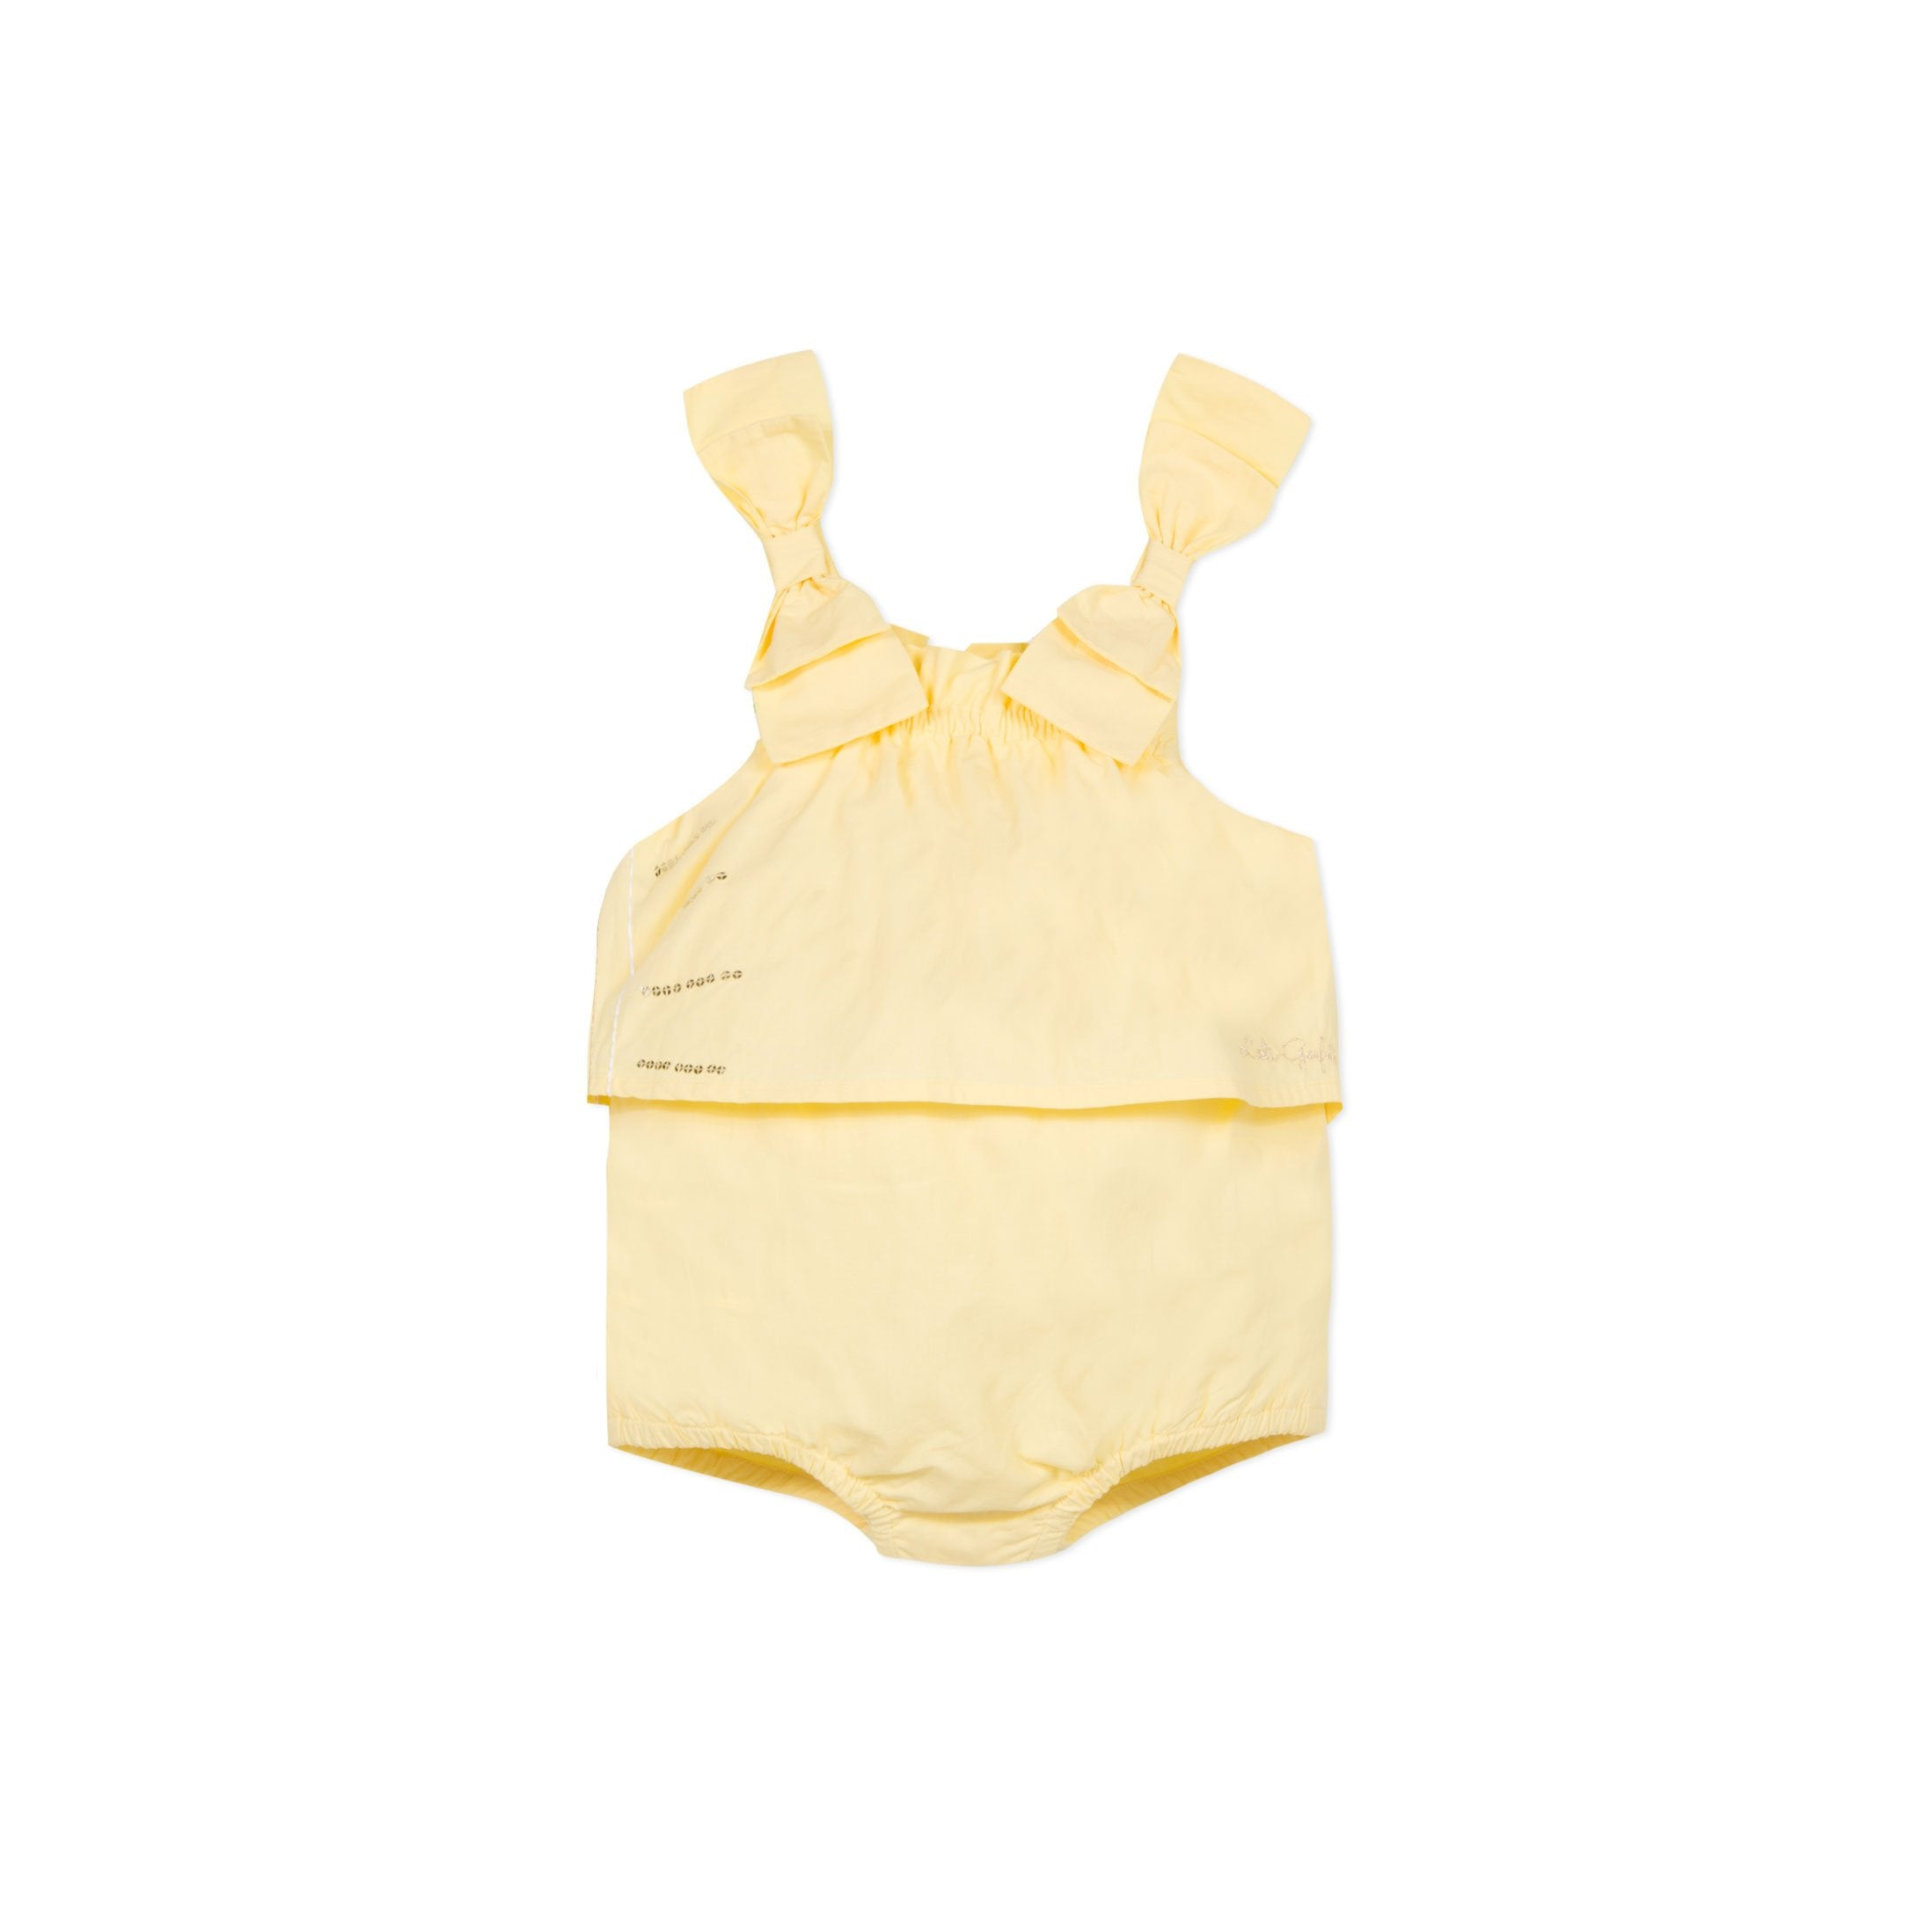 Luxury Baby Girl Romper by Lili Gaufrette at Bonjour Baby Baskets